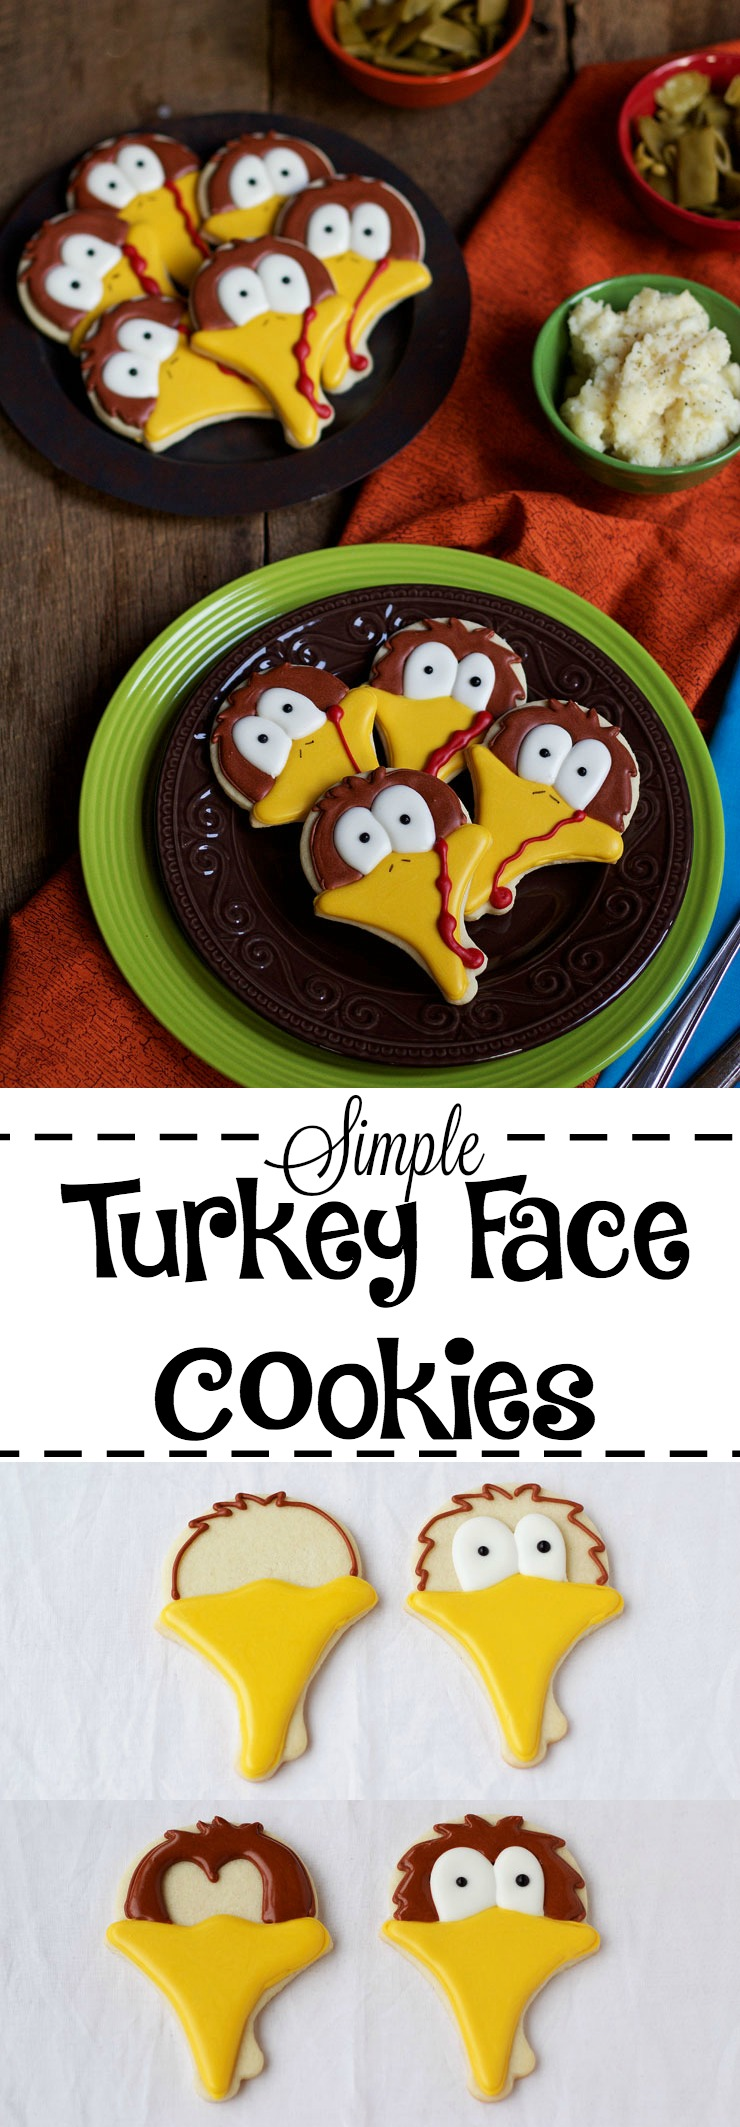 Simple Turkey Face Cookies | The Bearfoot Baker